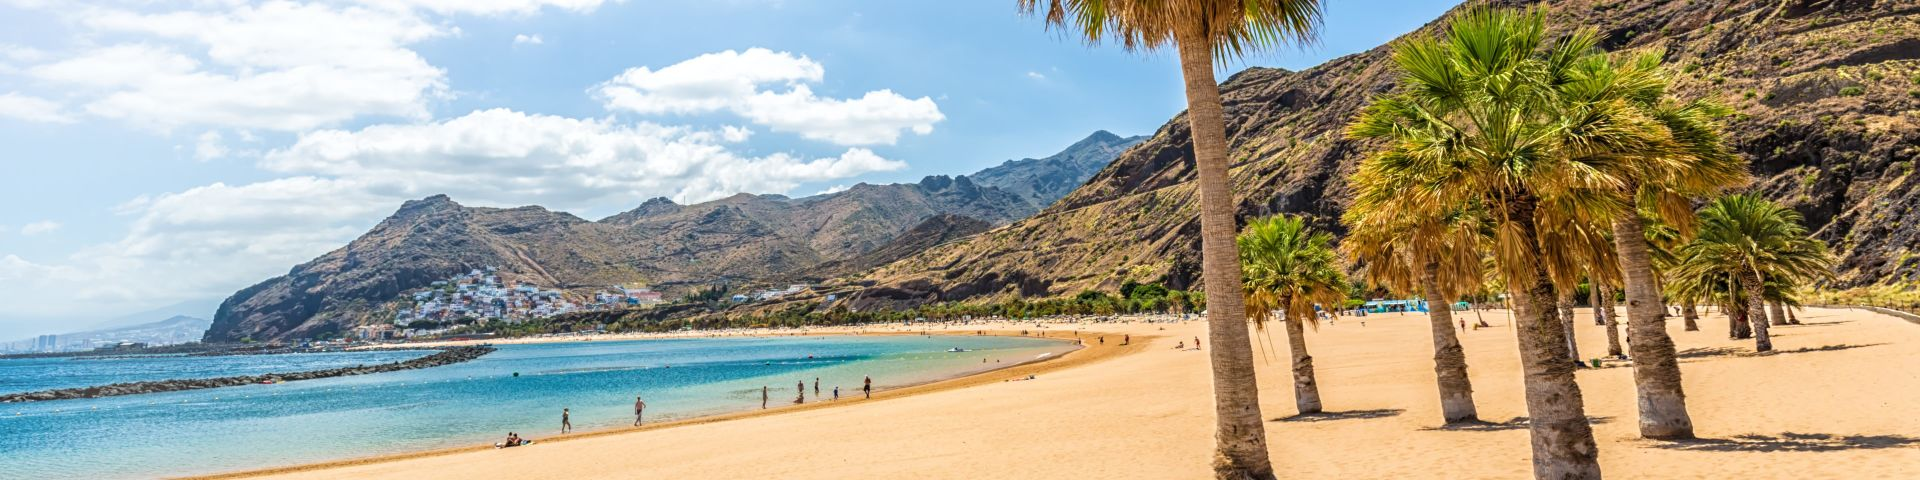 NOW! - Canary Islands are back